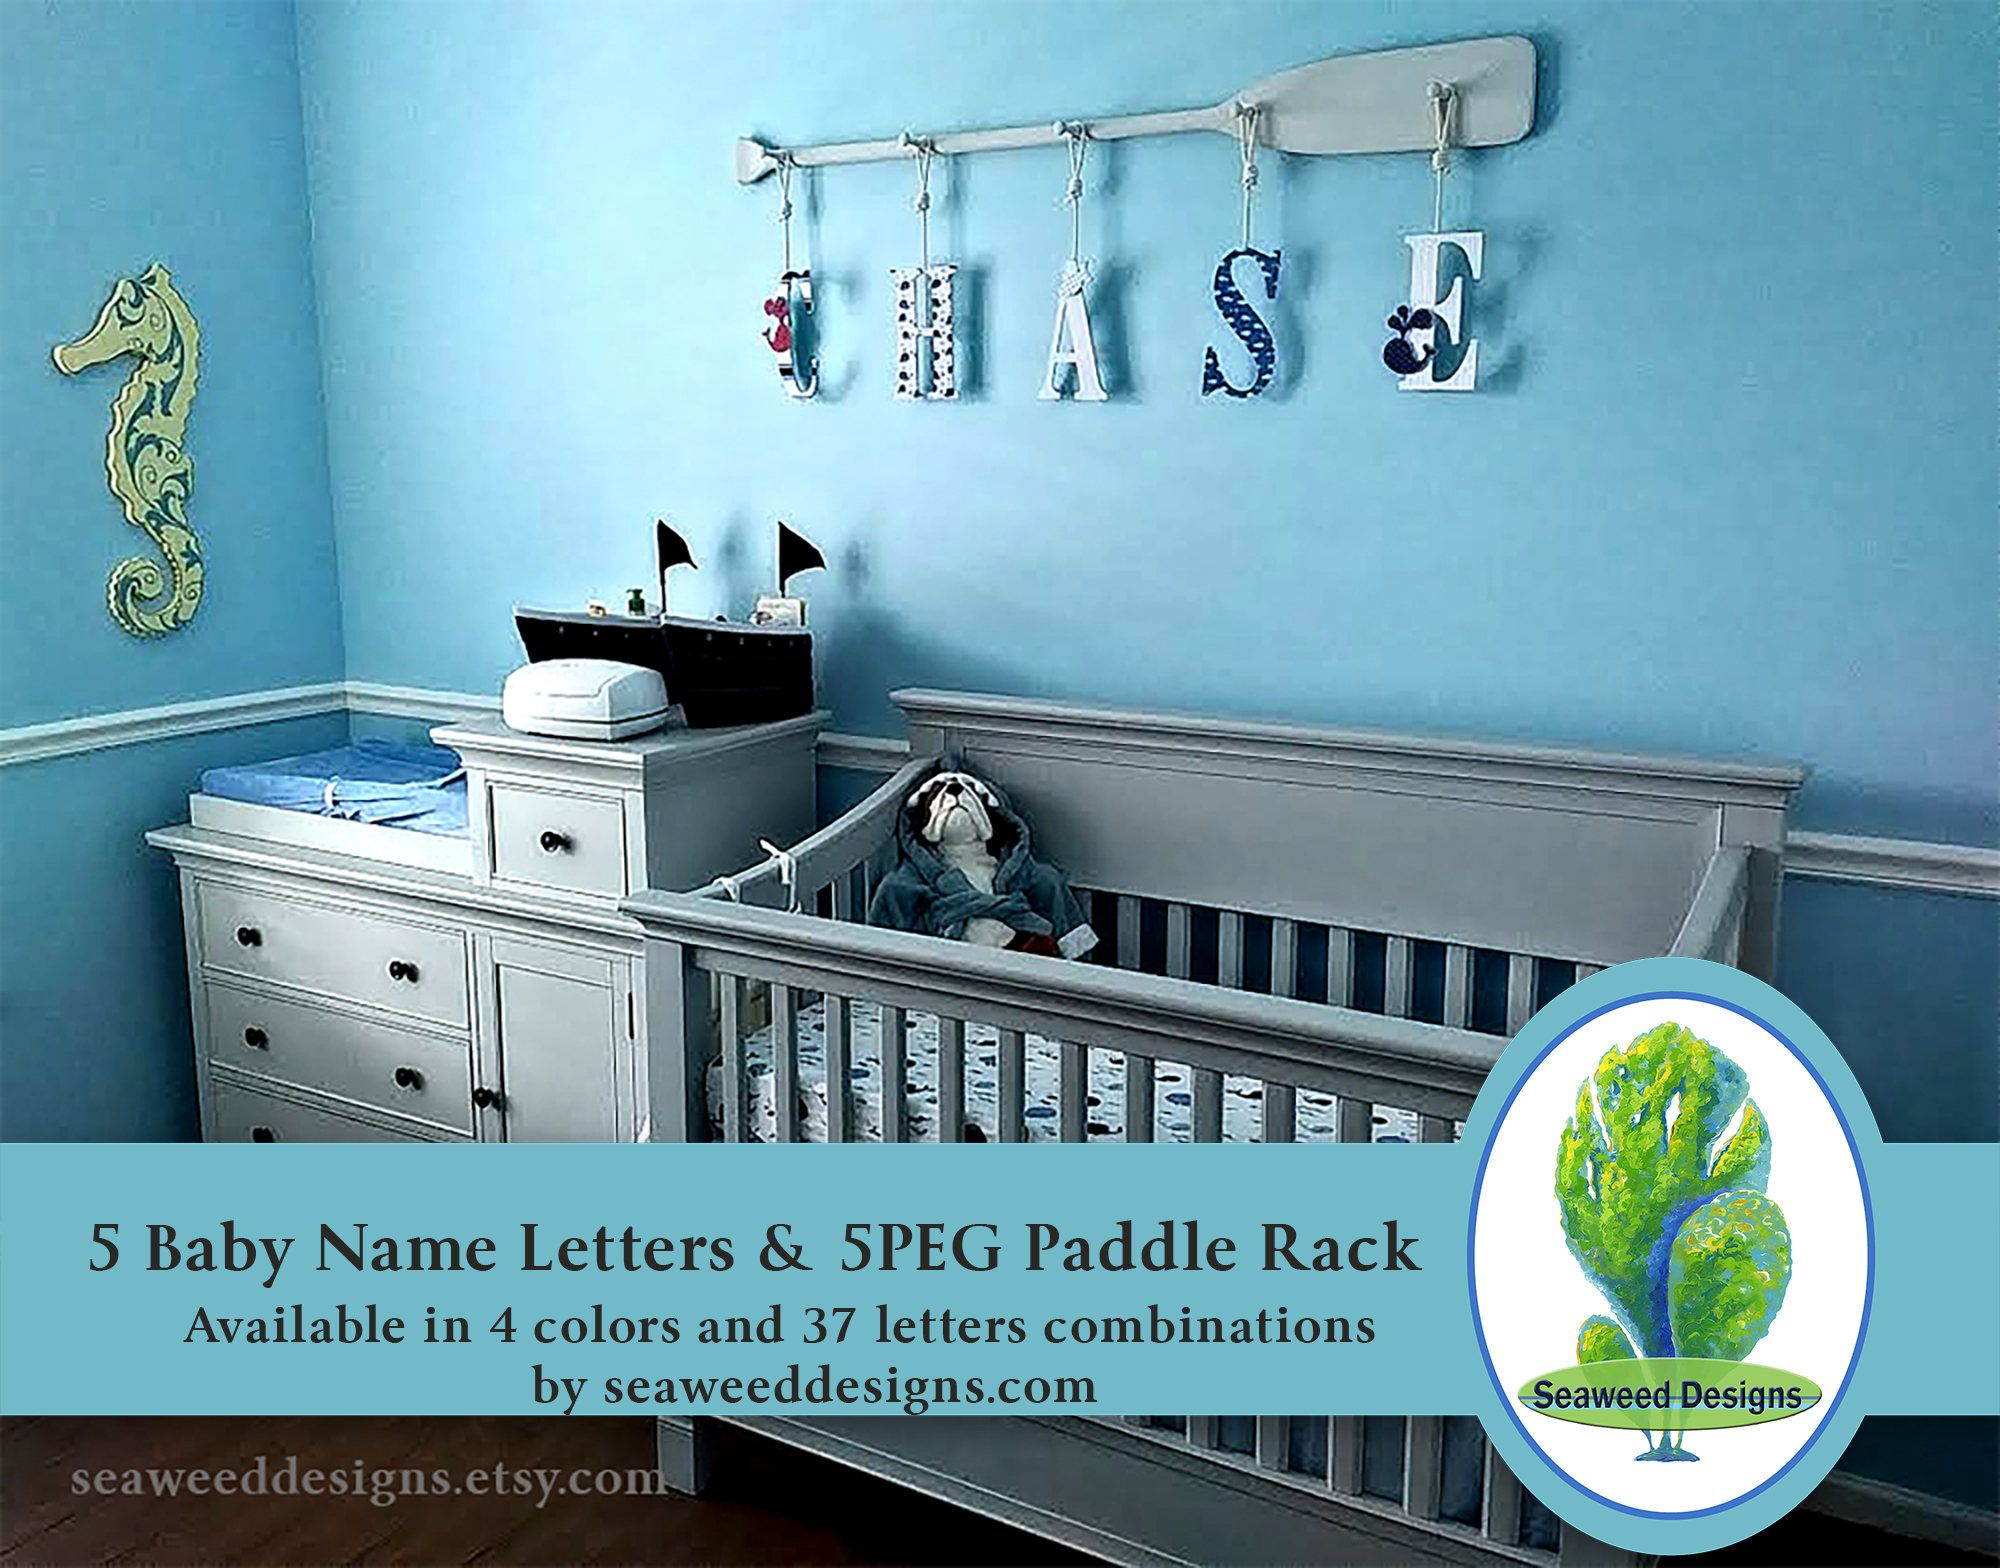 Five Baby Name Letters With 58 5peg Canoe Paddle Rack 9